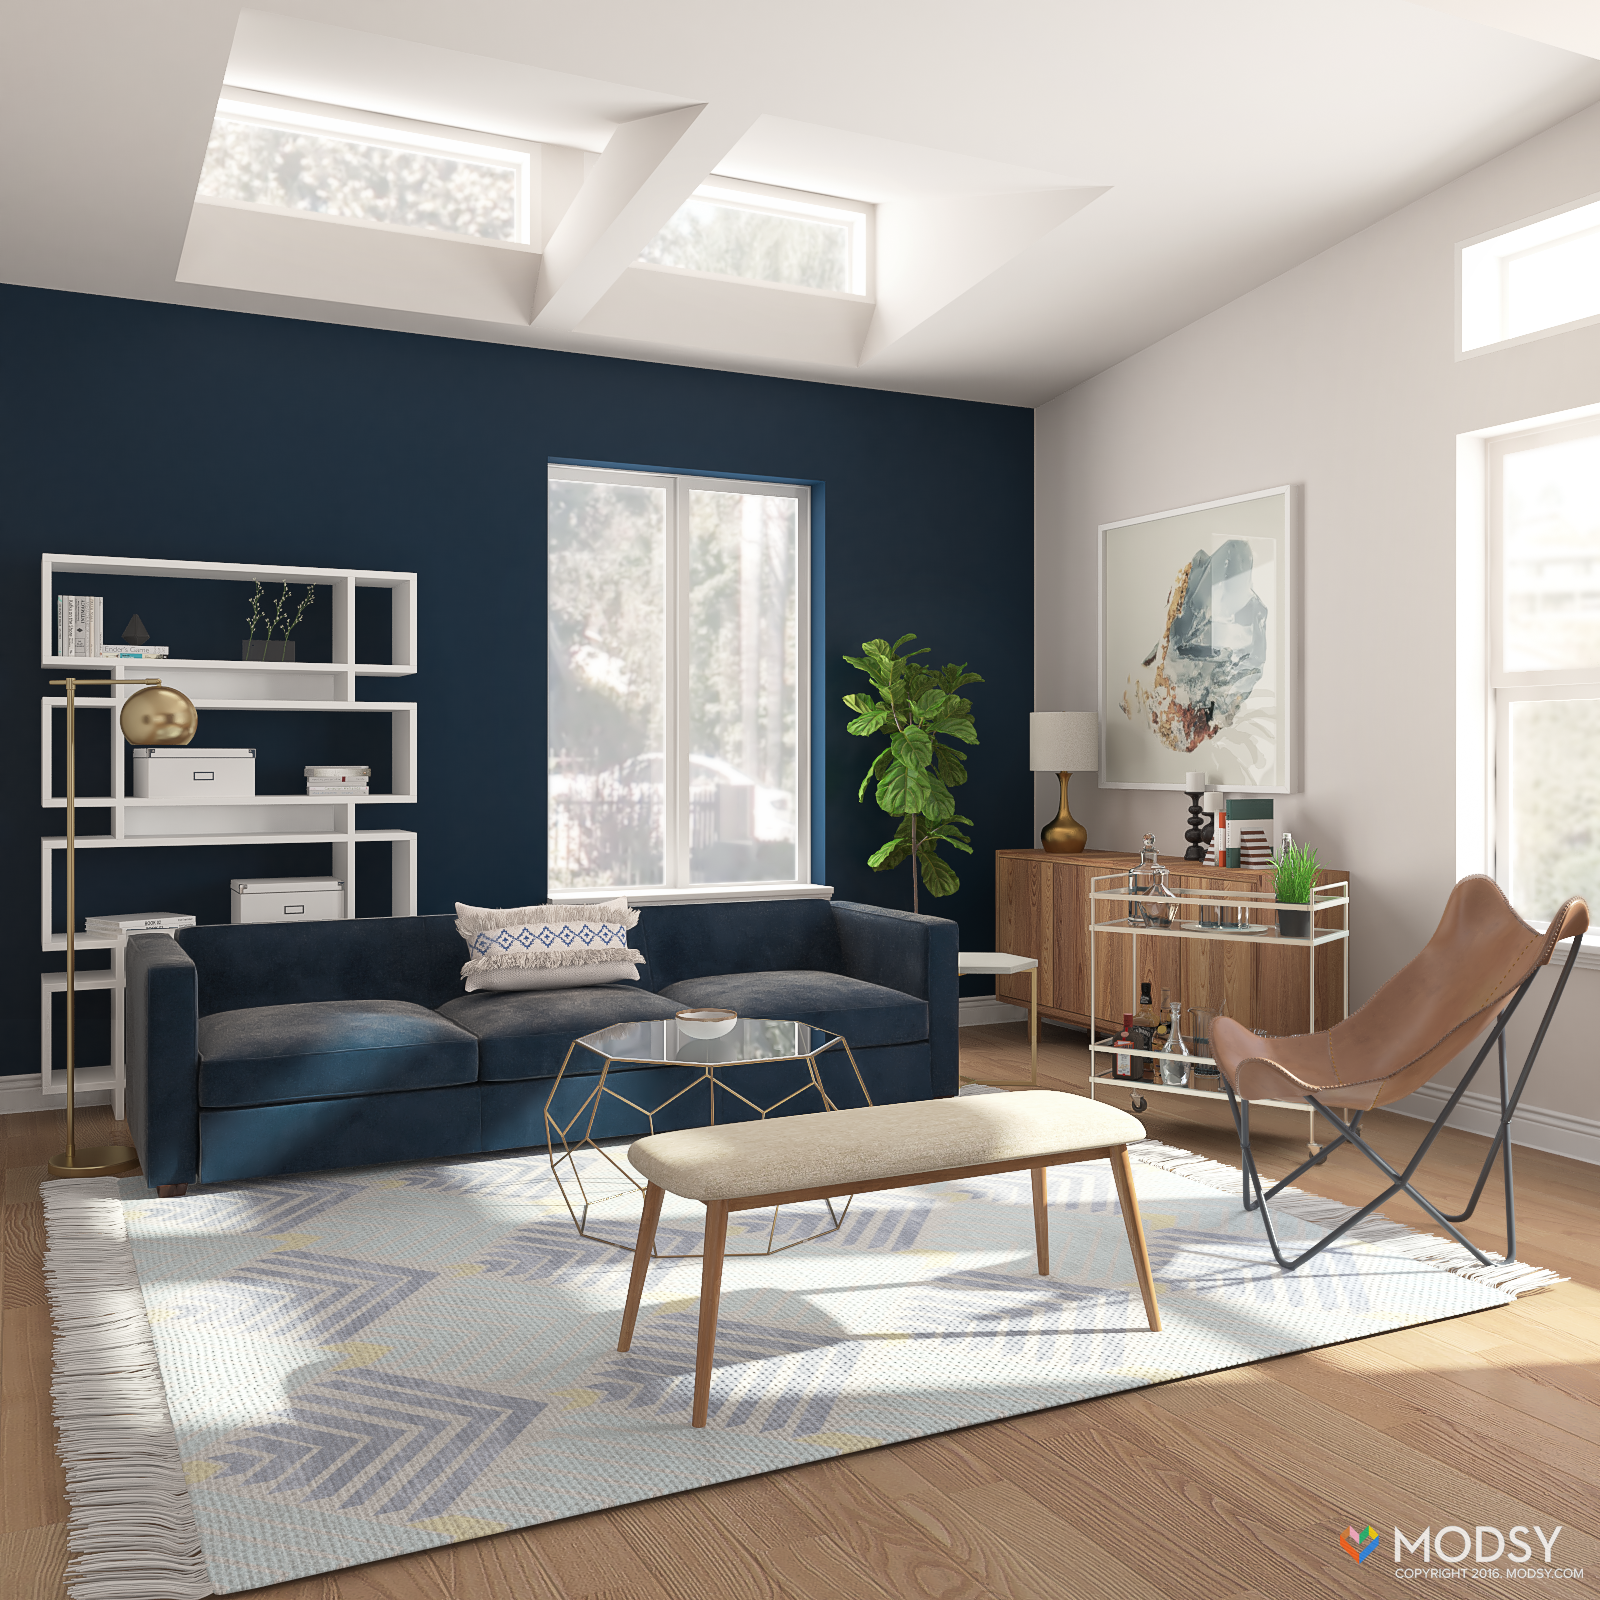 And Why We Think $6000 Is Reasonable A Little Bit Modern A Best Little Living Room Design 2018